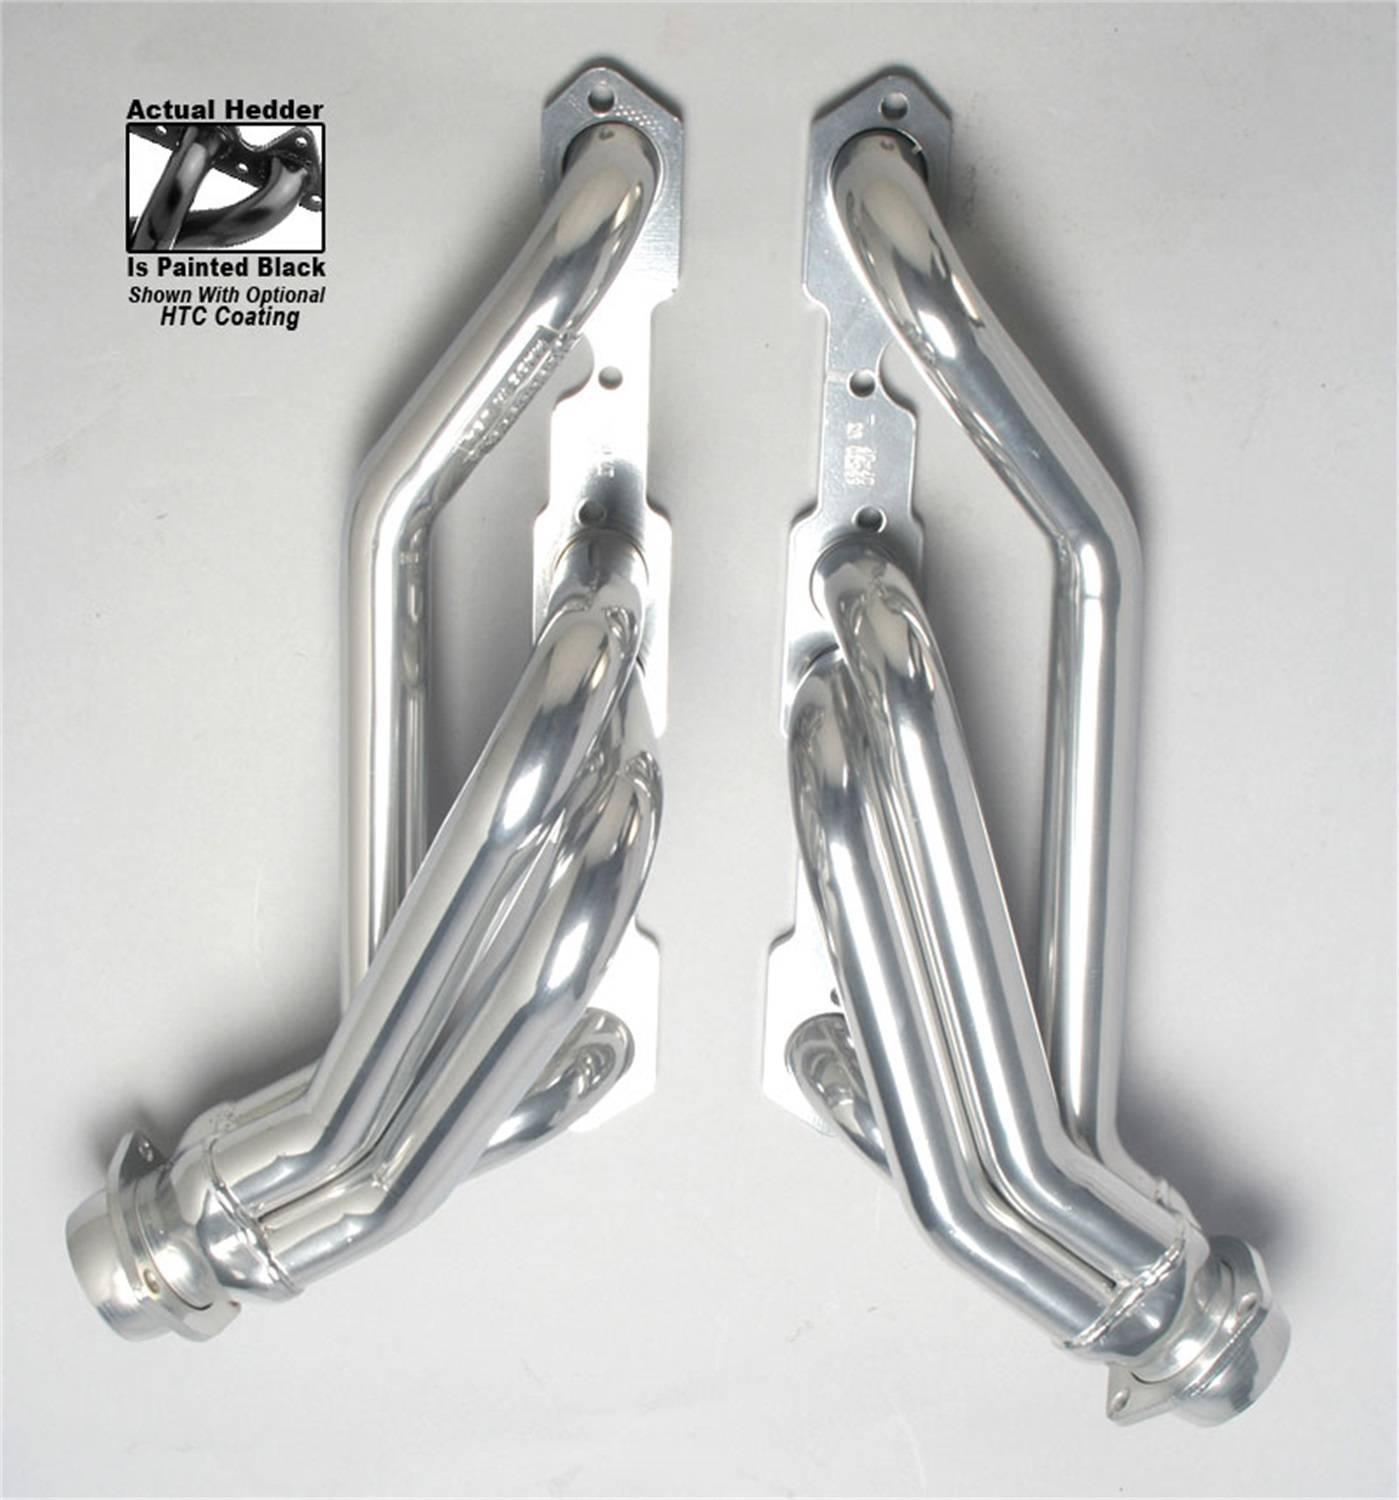 Standard Duty Uncoated Headers Hedman Hedders 69539